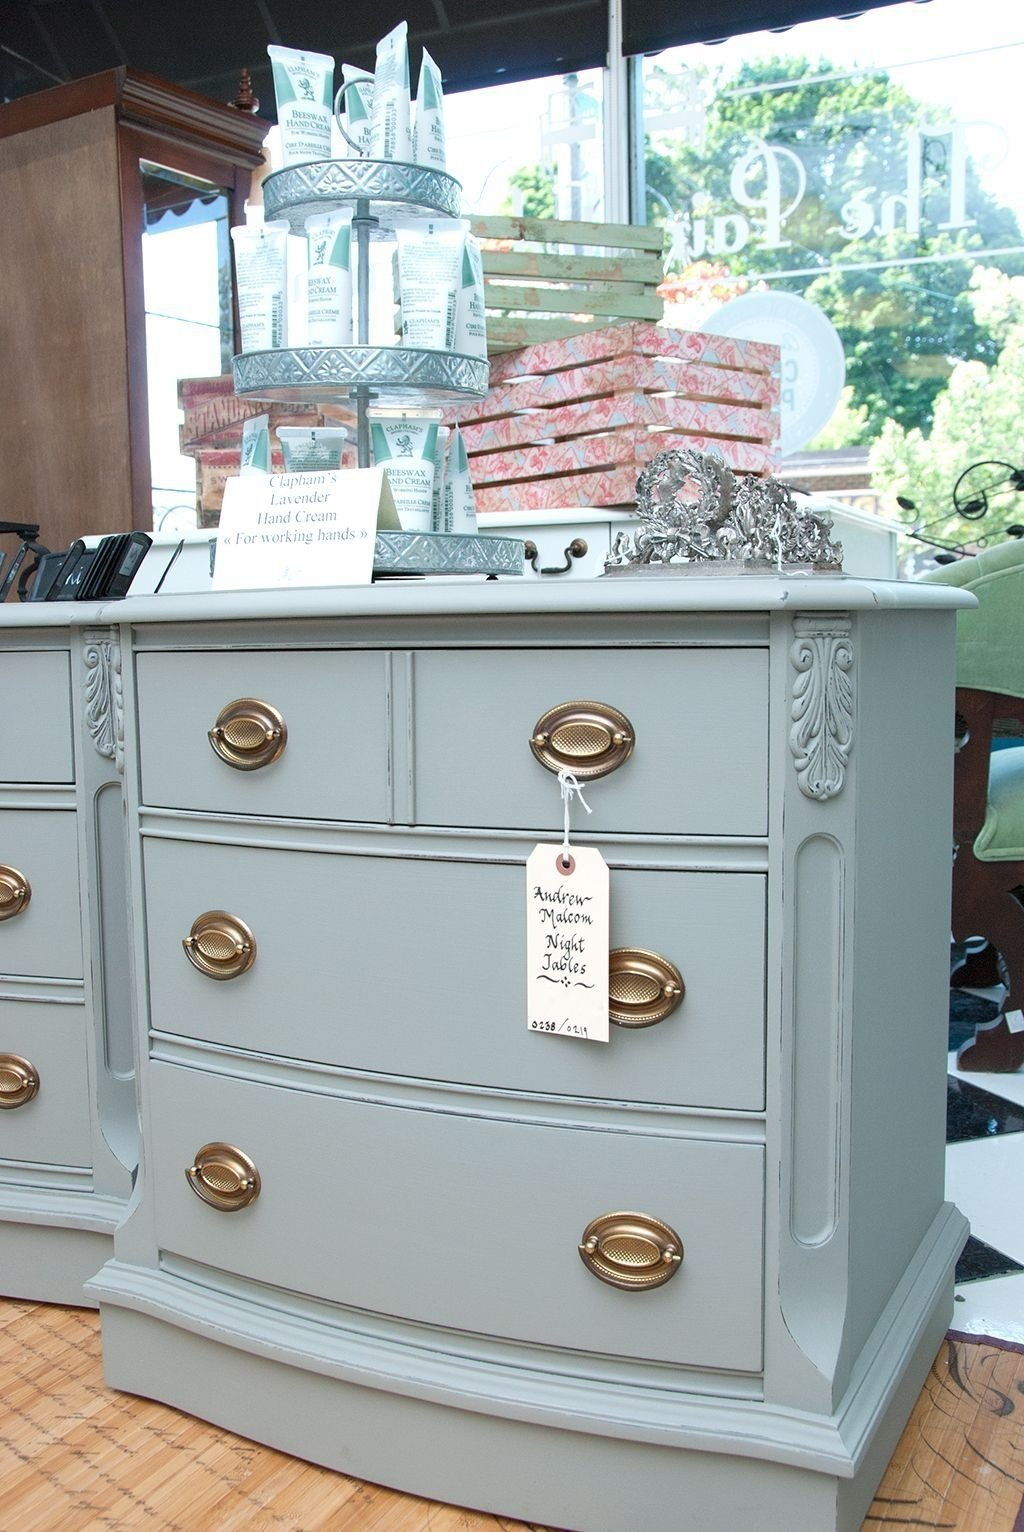 10 Pretty Annie Sloan Painted Furniture Ideas salvaged inspirations malcom annie sloan chalk painted end tables 2020